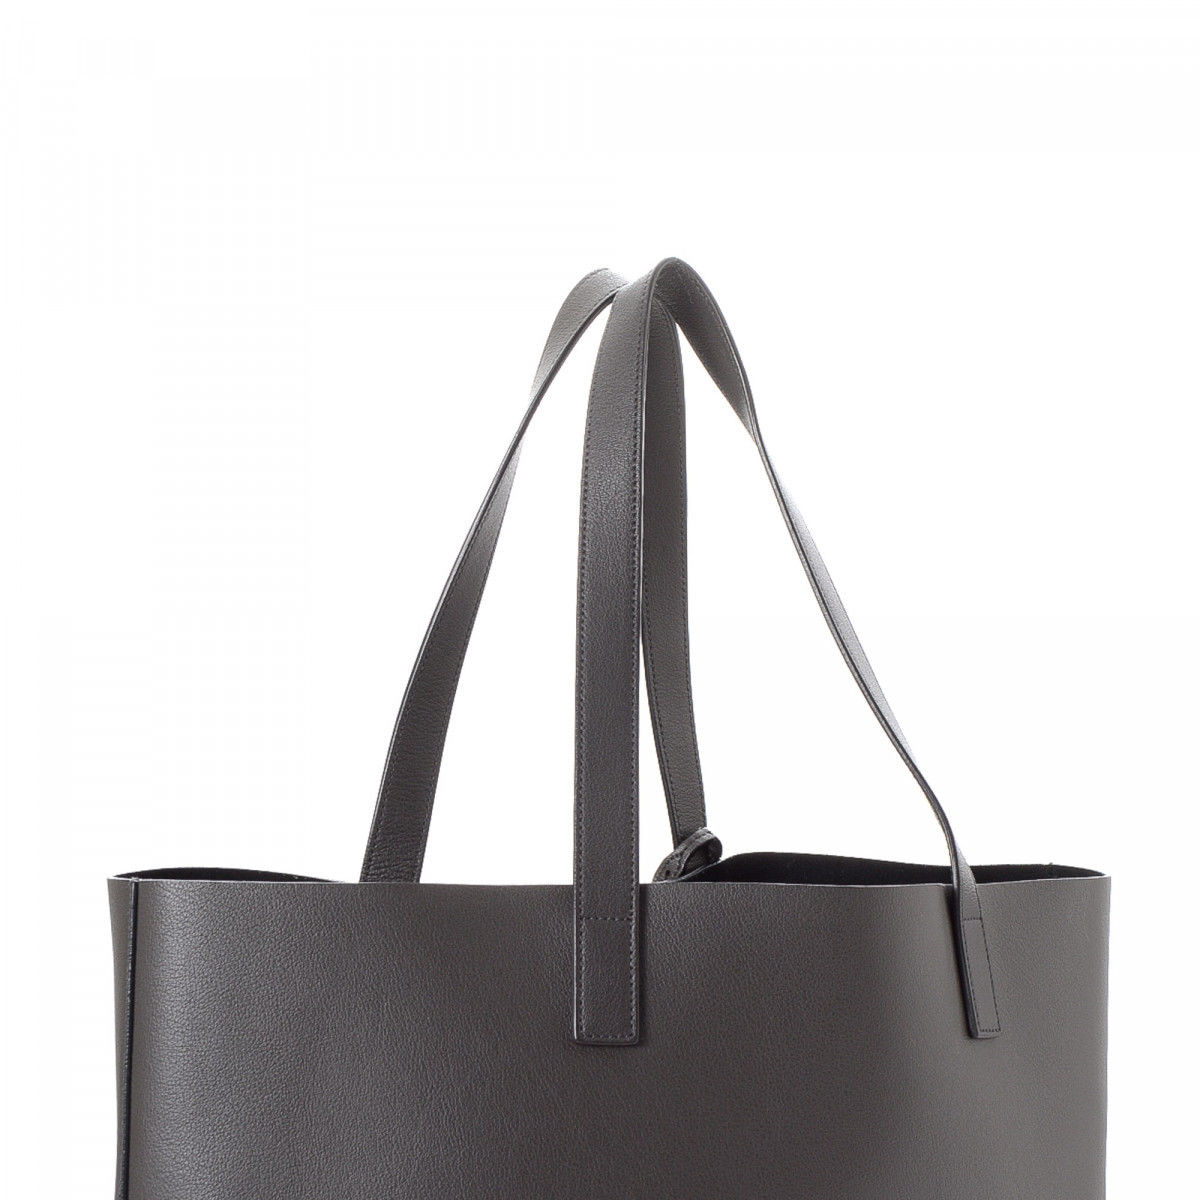 6b913d388924 Yves Saint Laurent Sac Shopping Tote Leather - LXRandCo - Pre-Owned ...